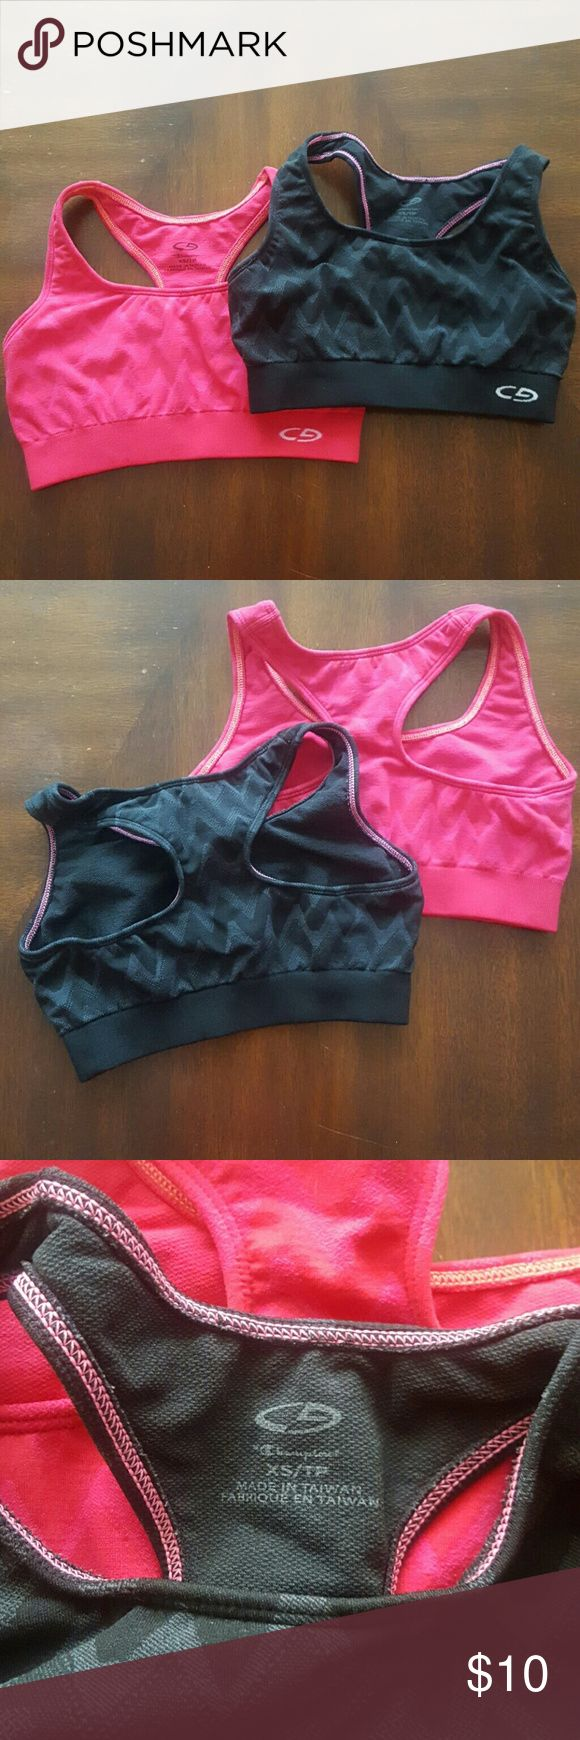 C9 Champion sports bras Two C9 by Champion sports bras that have plenty of life left in them! Champion Intimates & Sleepwear Bras